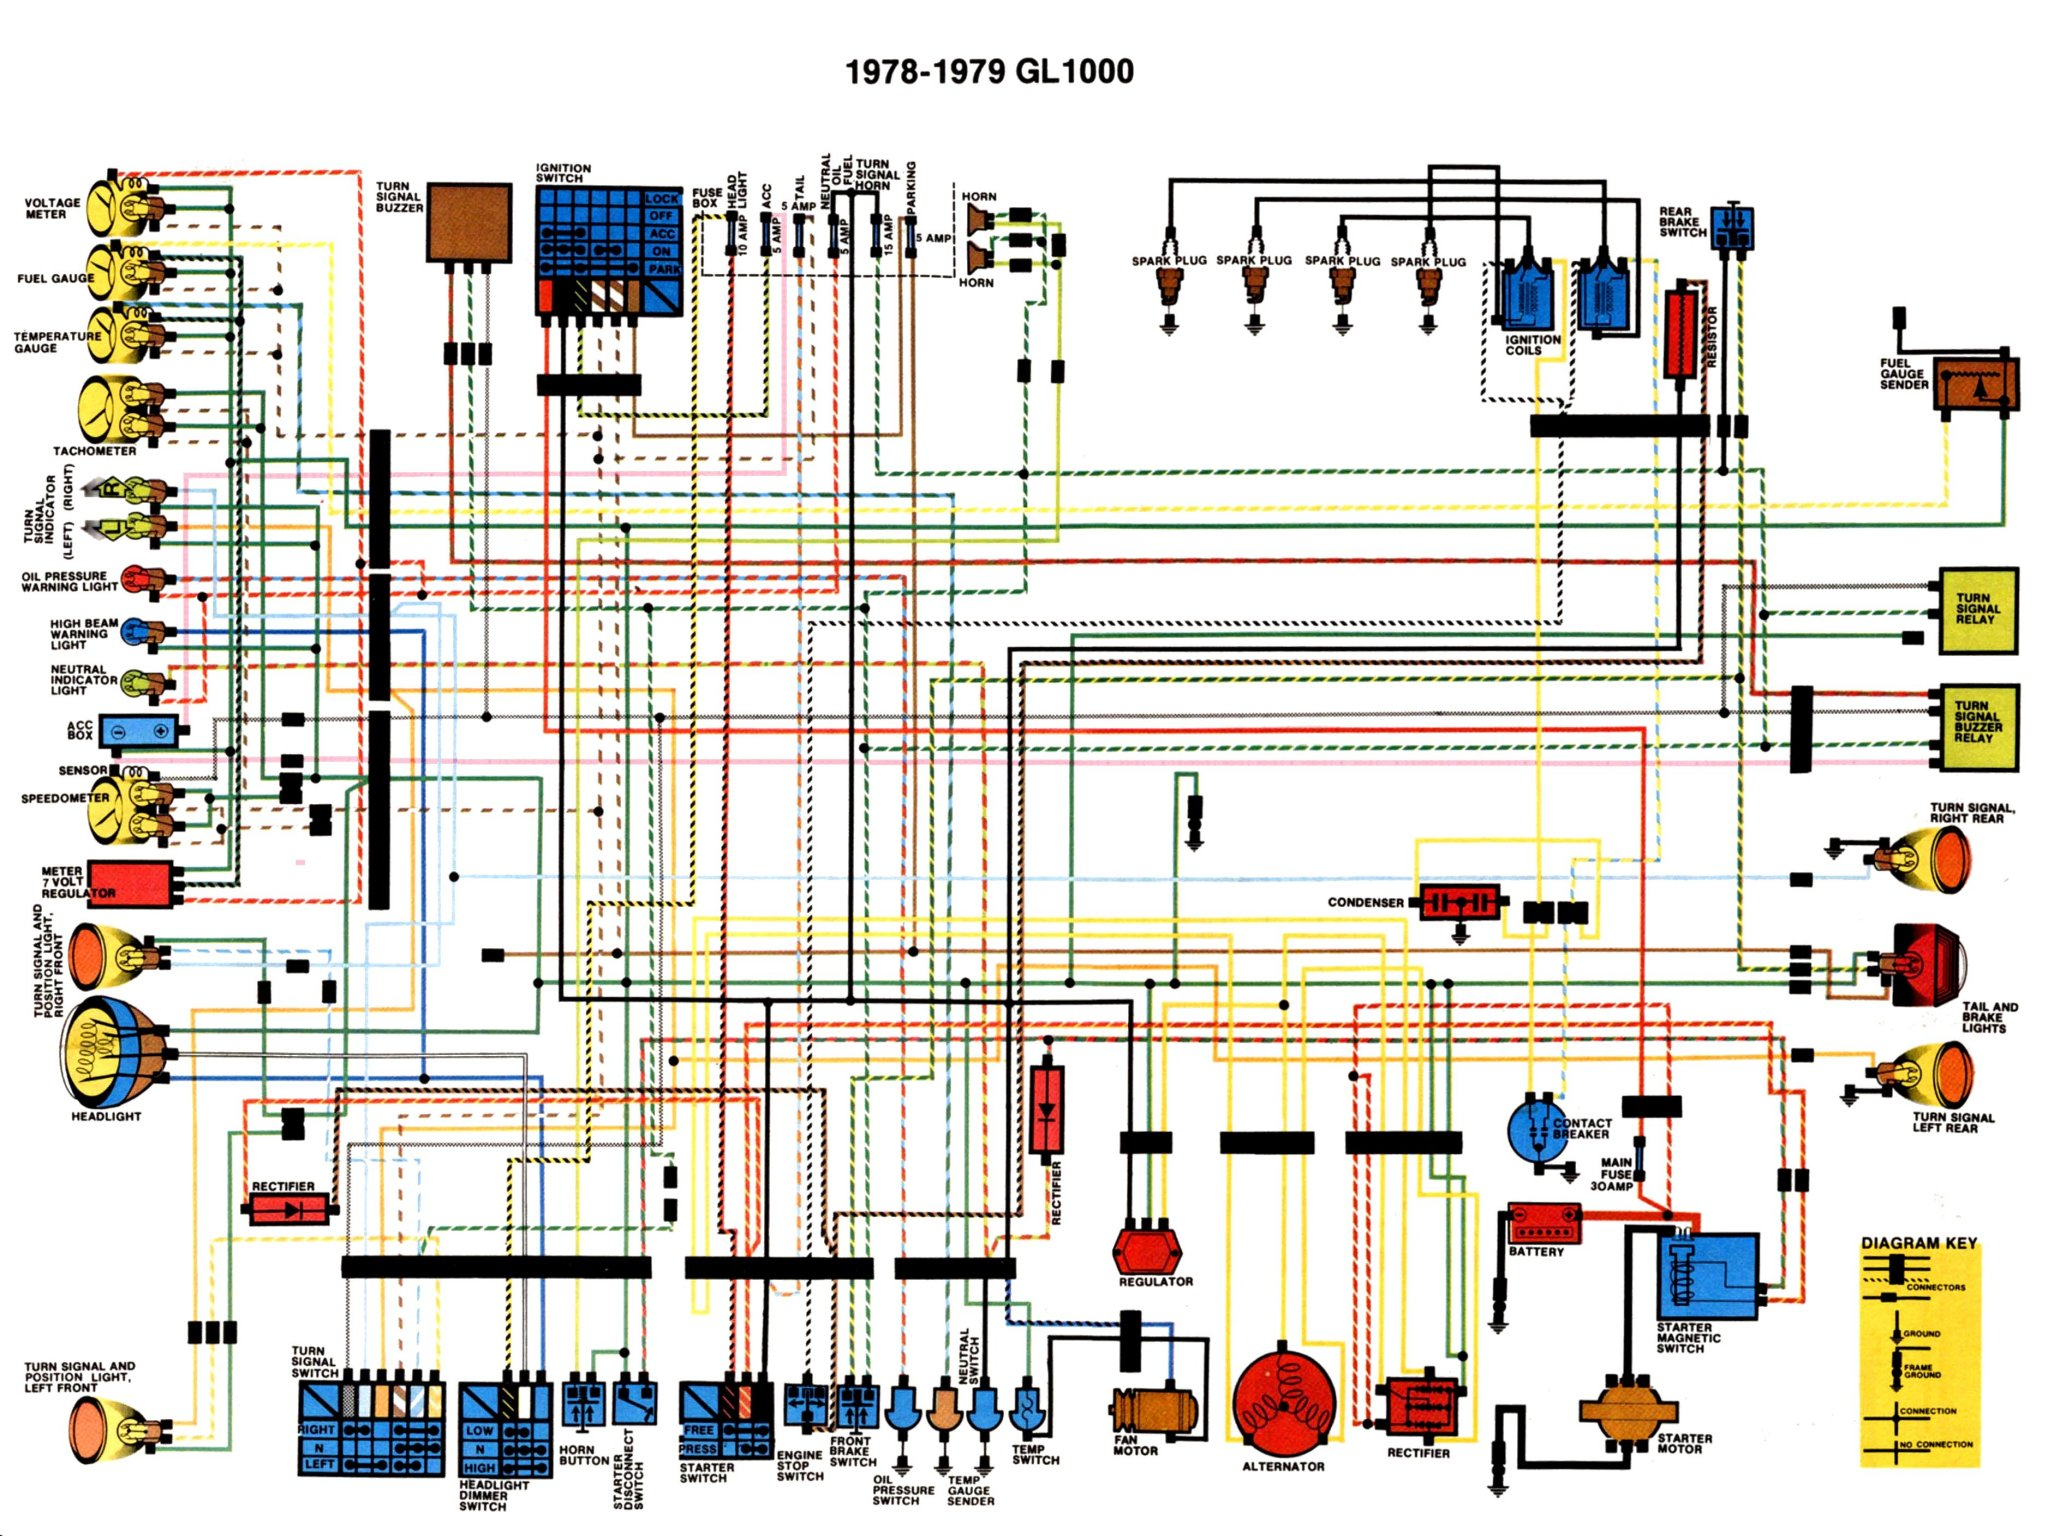 DIAGRAM] 2012 Honda Goldwing Wiring Diagram FULL Version HD Quality Wiring  Diagram - HYDRAULICCYLINDERDIAGRAM.ESTHAONNATATION.FResthaonnatation.fr